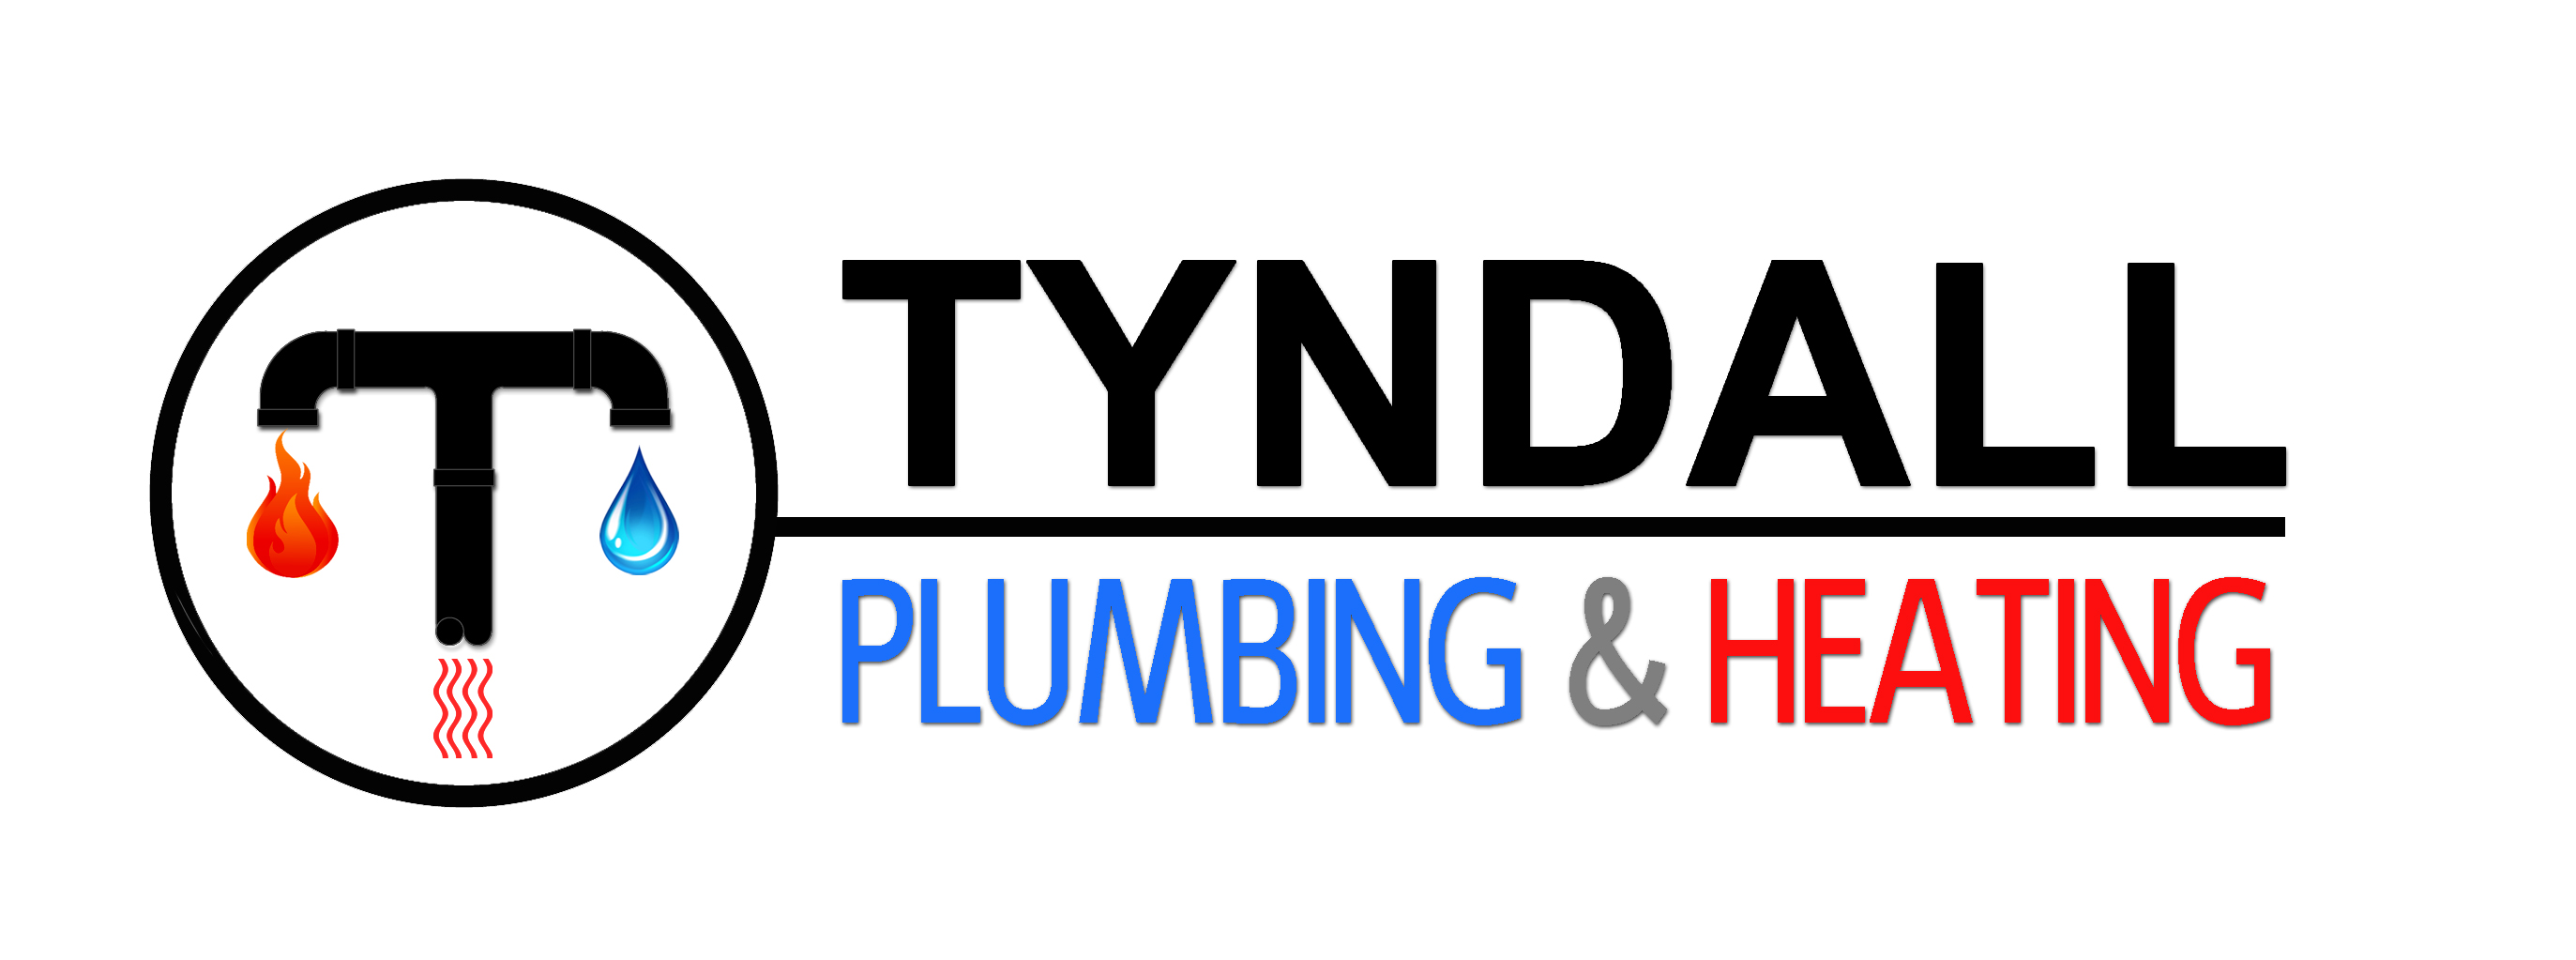 Logo Design by JSDESIGNGROUP - Entry No. 134 in the Logo Design Contest Imaginative Logo Design for Tyndall Plumbing & Heating.